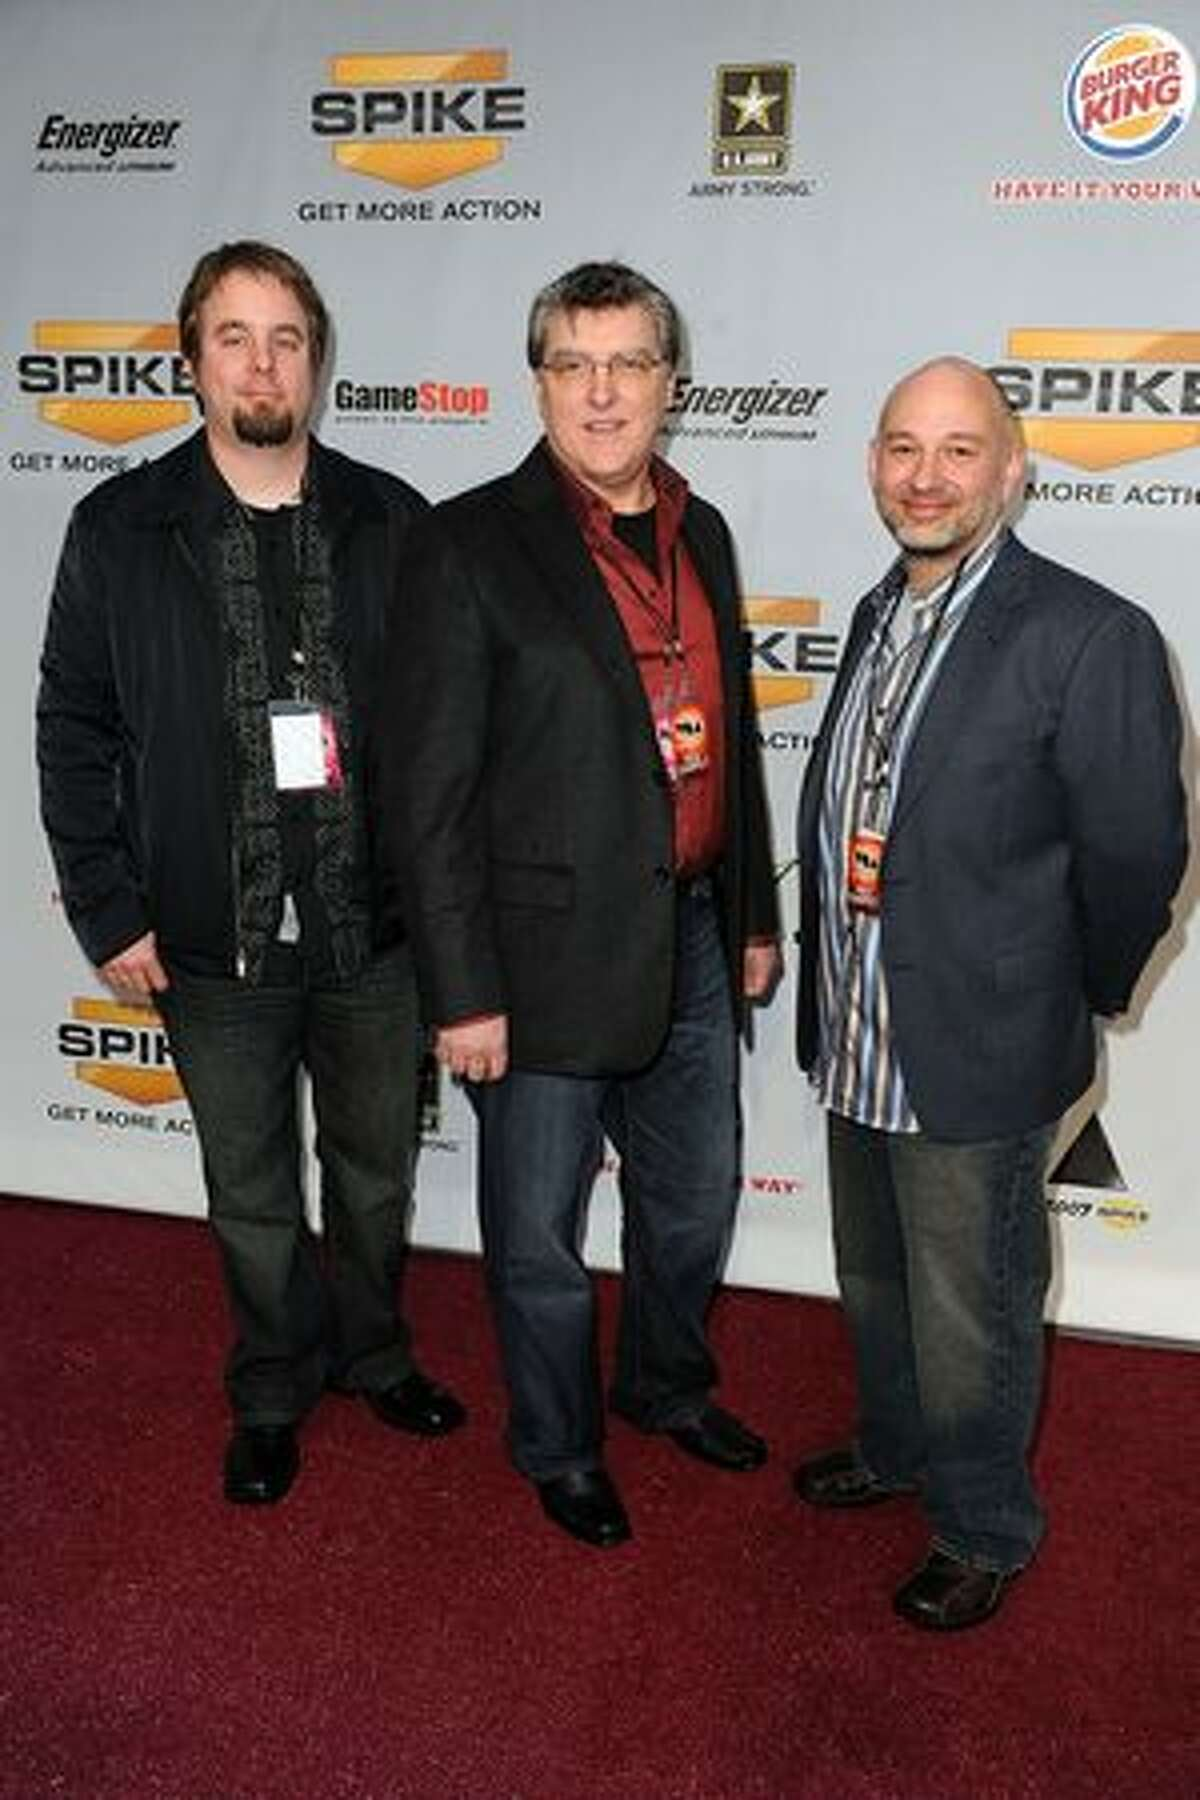 Brian Jarrard, Martin O'Donnell, and Curtis Kramer arrive at Spike TV's 7th Annual Video Game Awards at the Nokia Event Deck at LA Live on December 12, 2009 in Los Angeles, California.